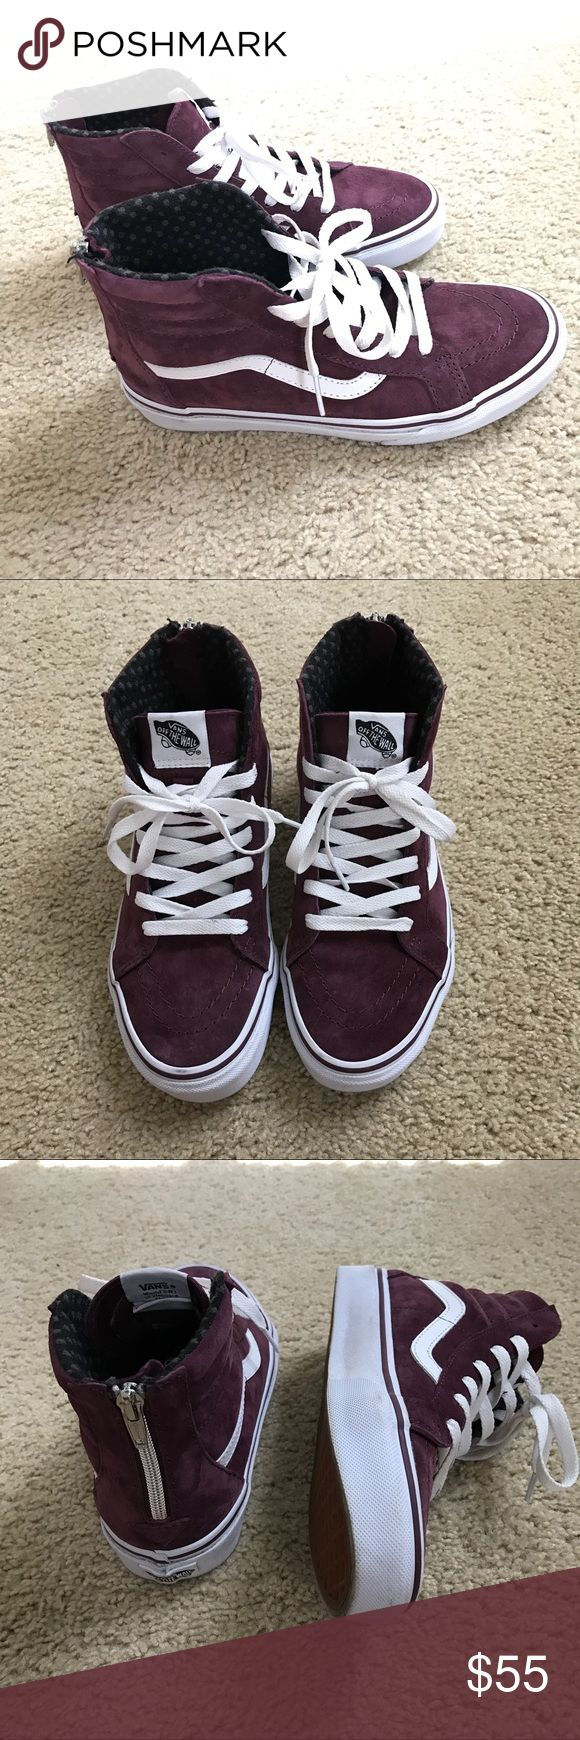 Sk8-Hi Zip MTE Vans Worn once! Suede material in Fig color. Excellent condition. Youth/men's size 6, so they fit a women's 7.5. Vans Shoes Sneakers